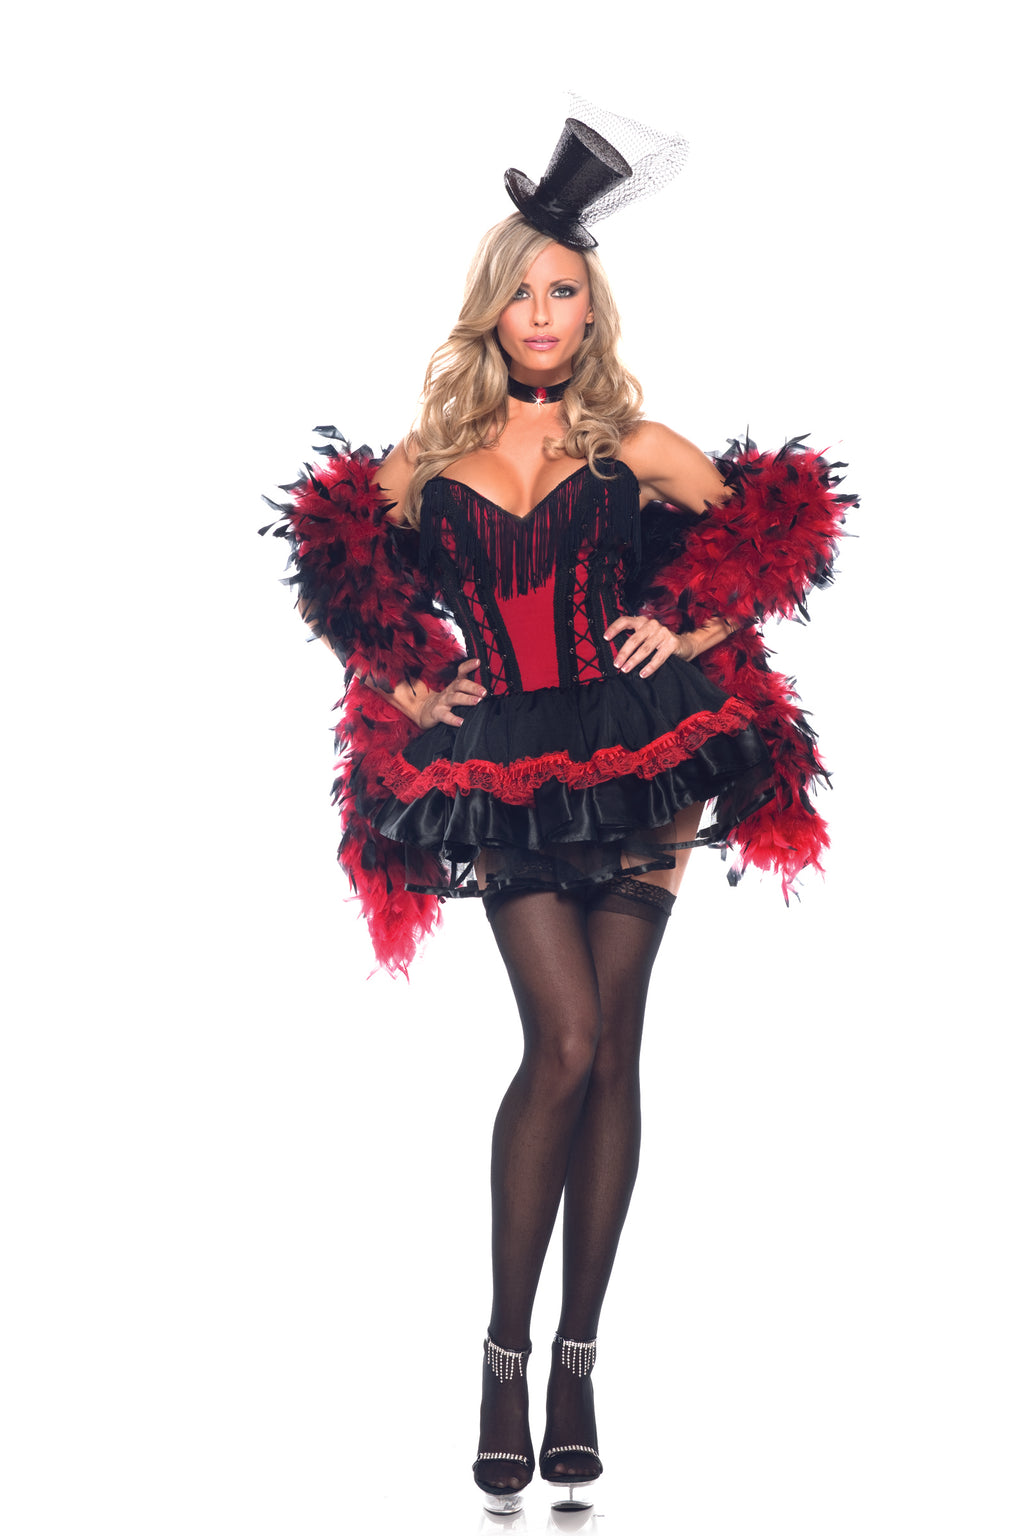 Adult-Women's-2-Piece-Burlesque-Moulin-Rouge-Halloween-Party-Costume